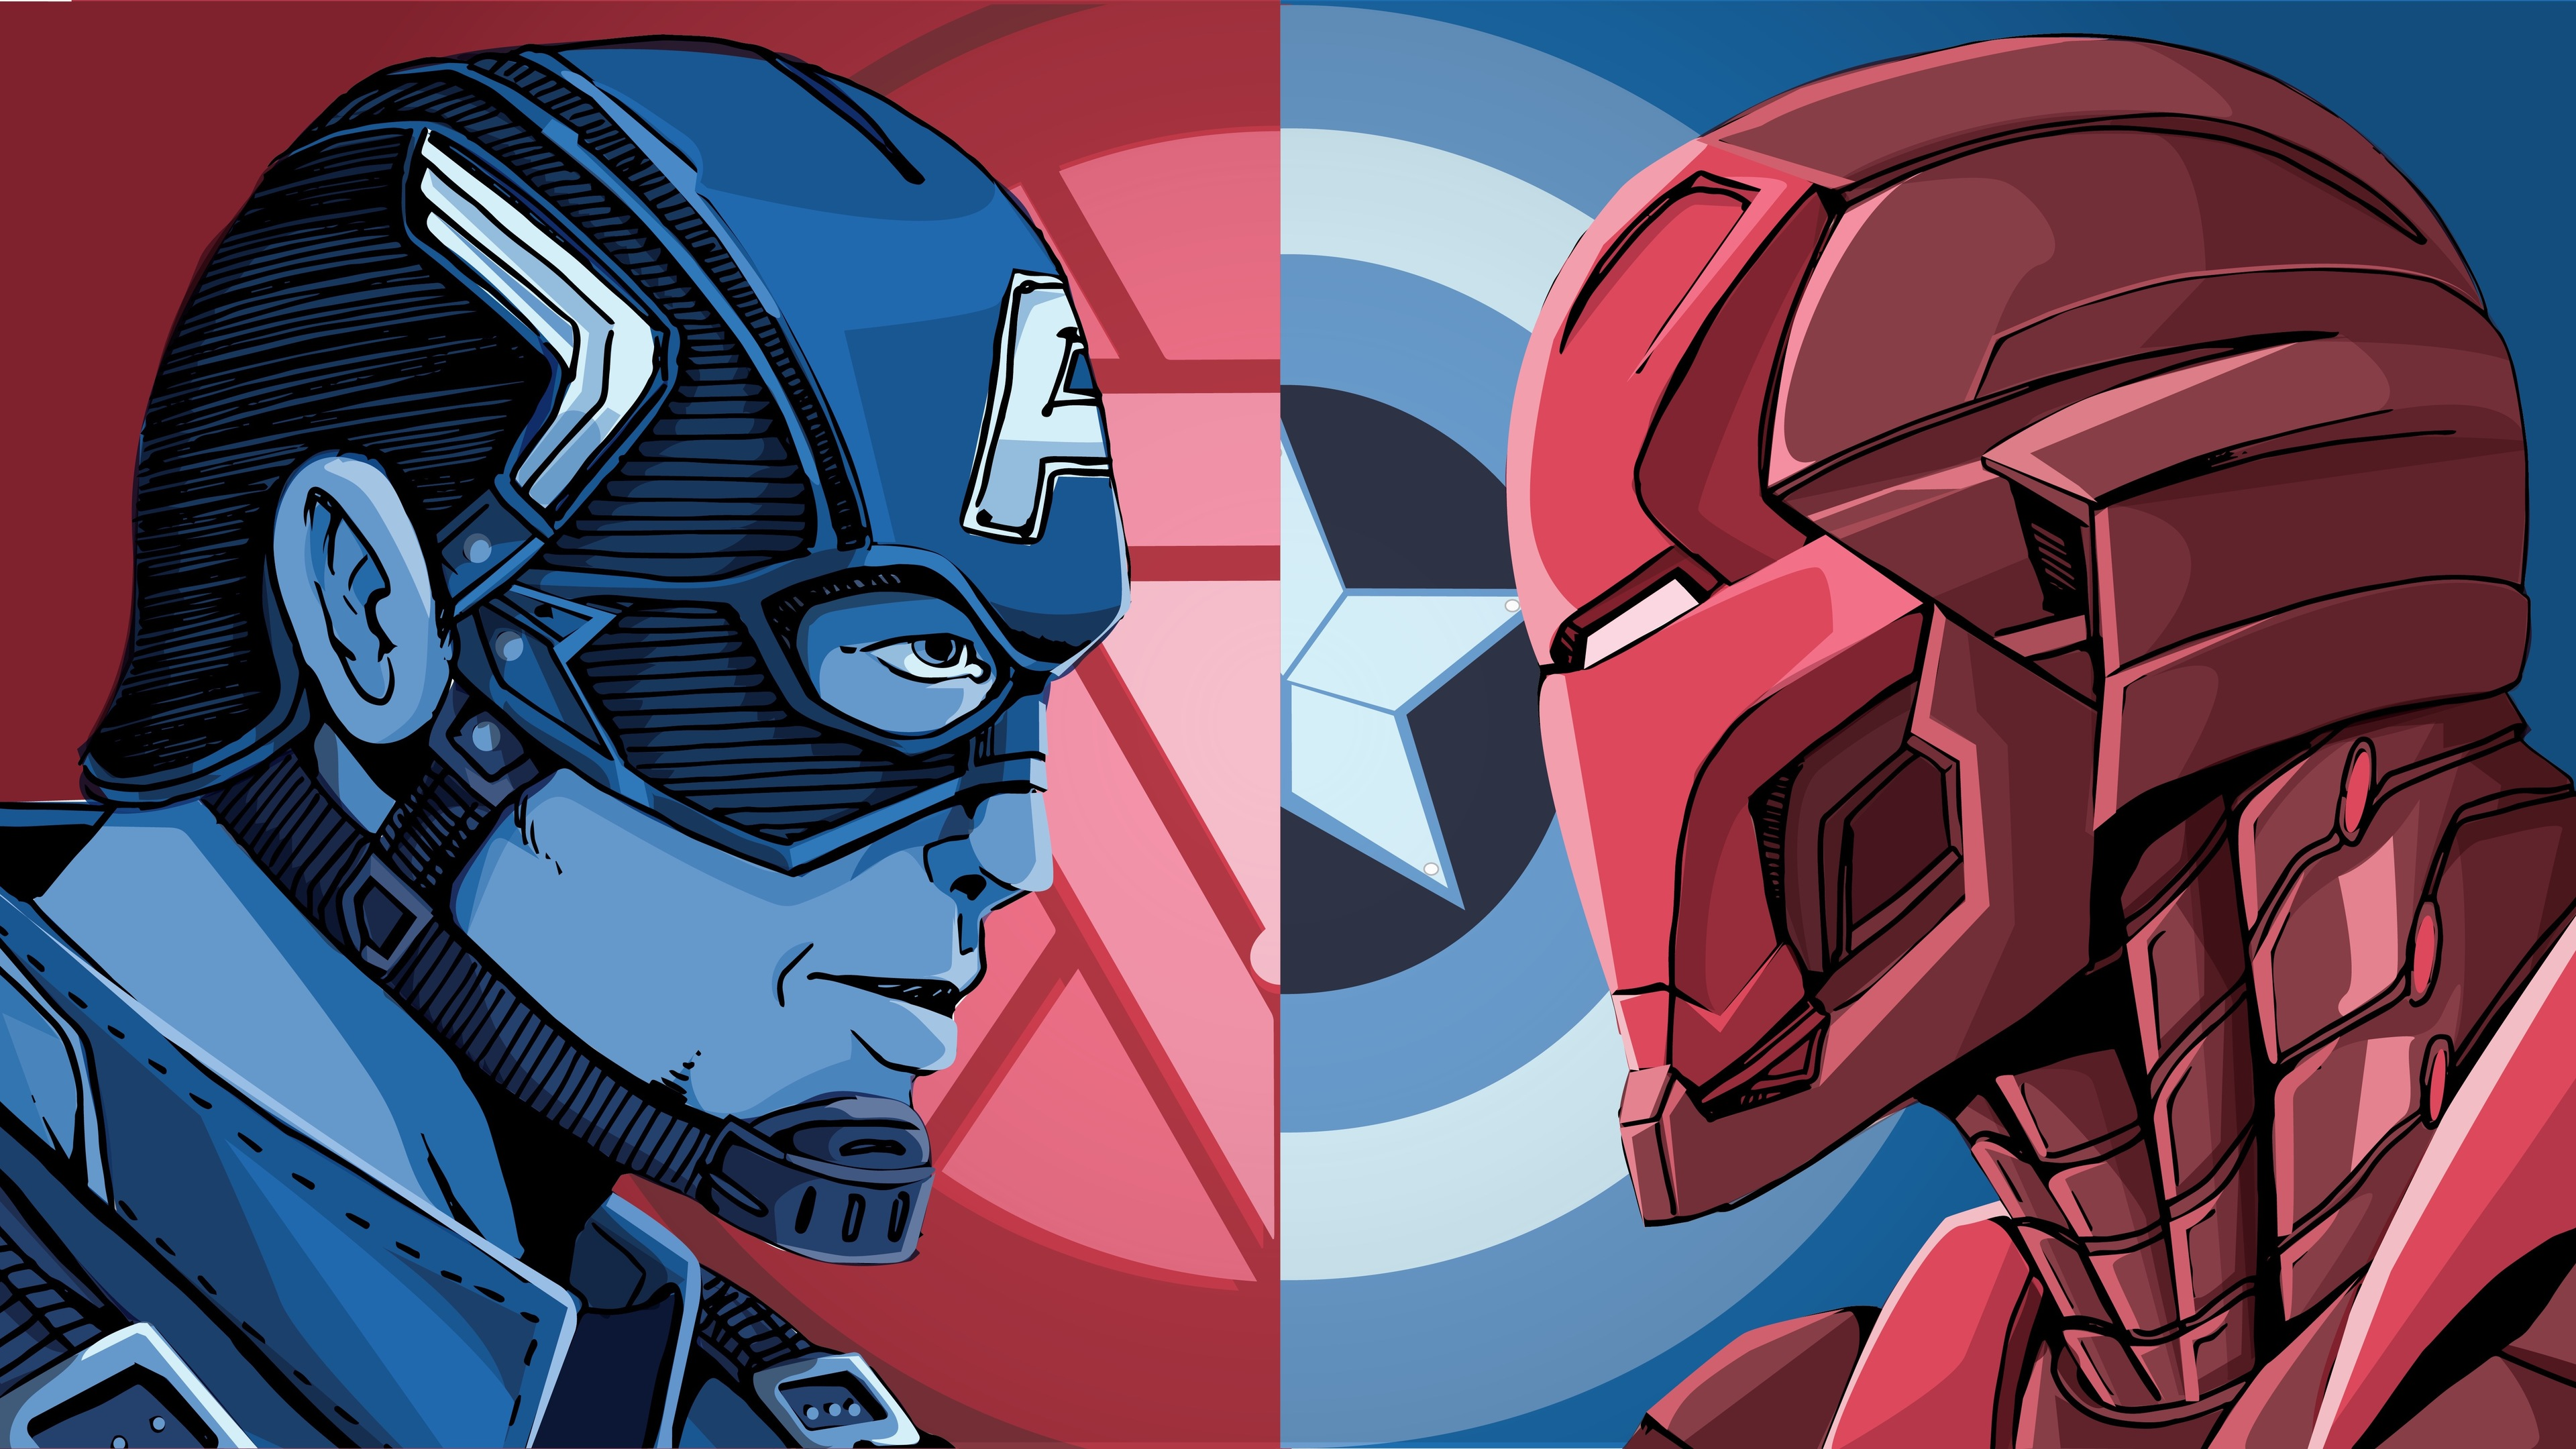 iron man and captain america 4k 1550510618 - Iron Man And Captain America 4k - superheroes wallpapers, iron man wallpapers, hd-wallpapers, captain america wallpapers, artwork wallpapers, 8k wallpapers, 5k wallpapers, 4k-wallpapers